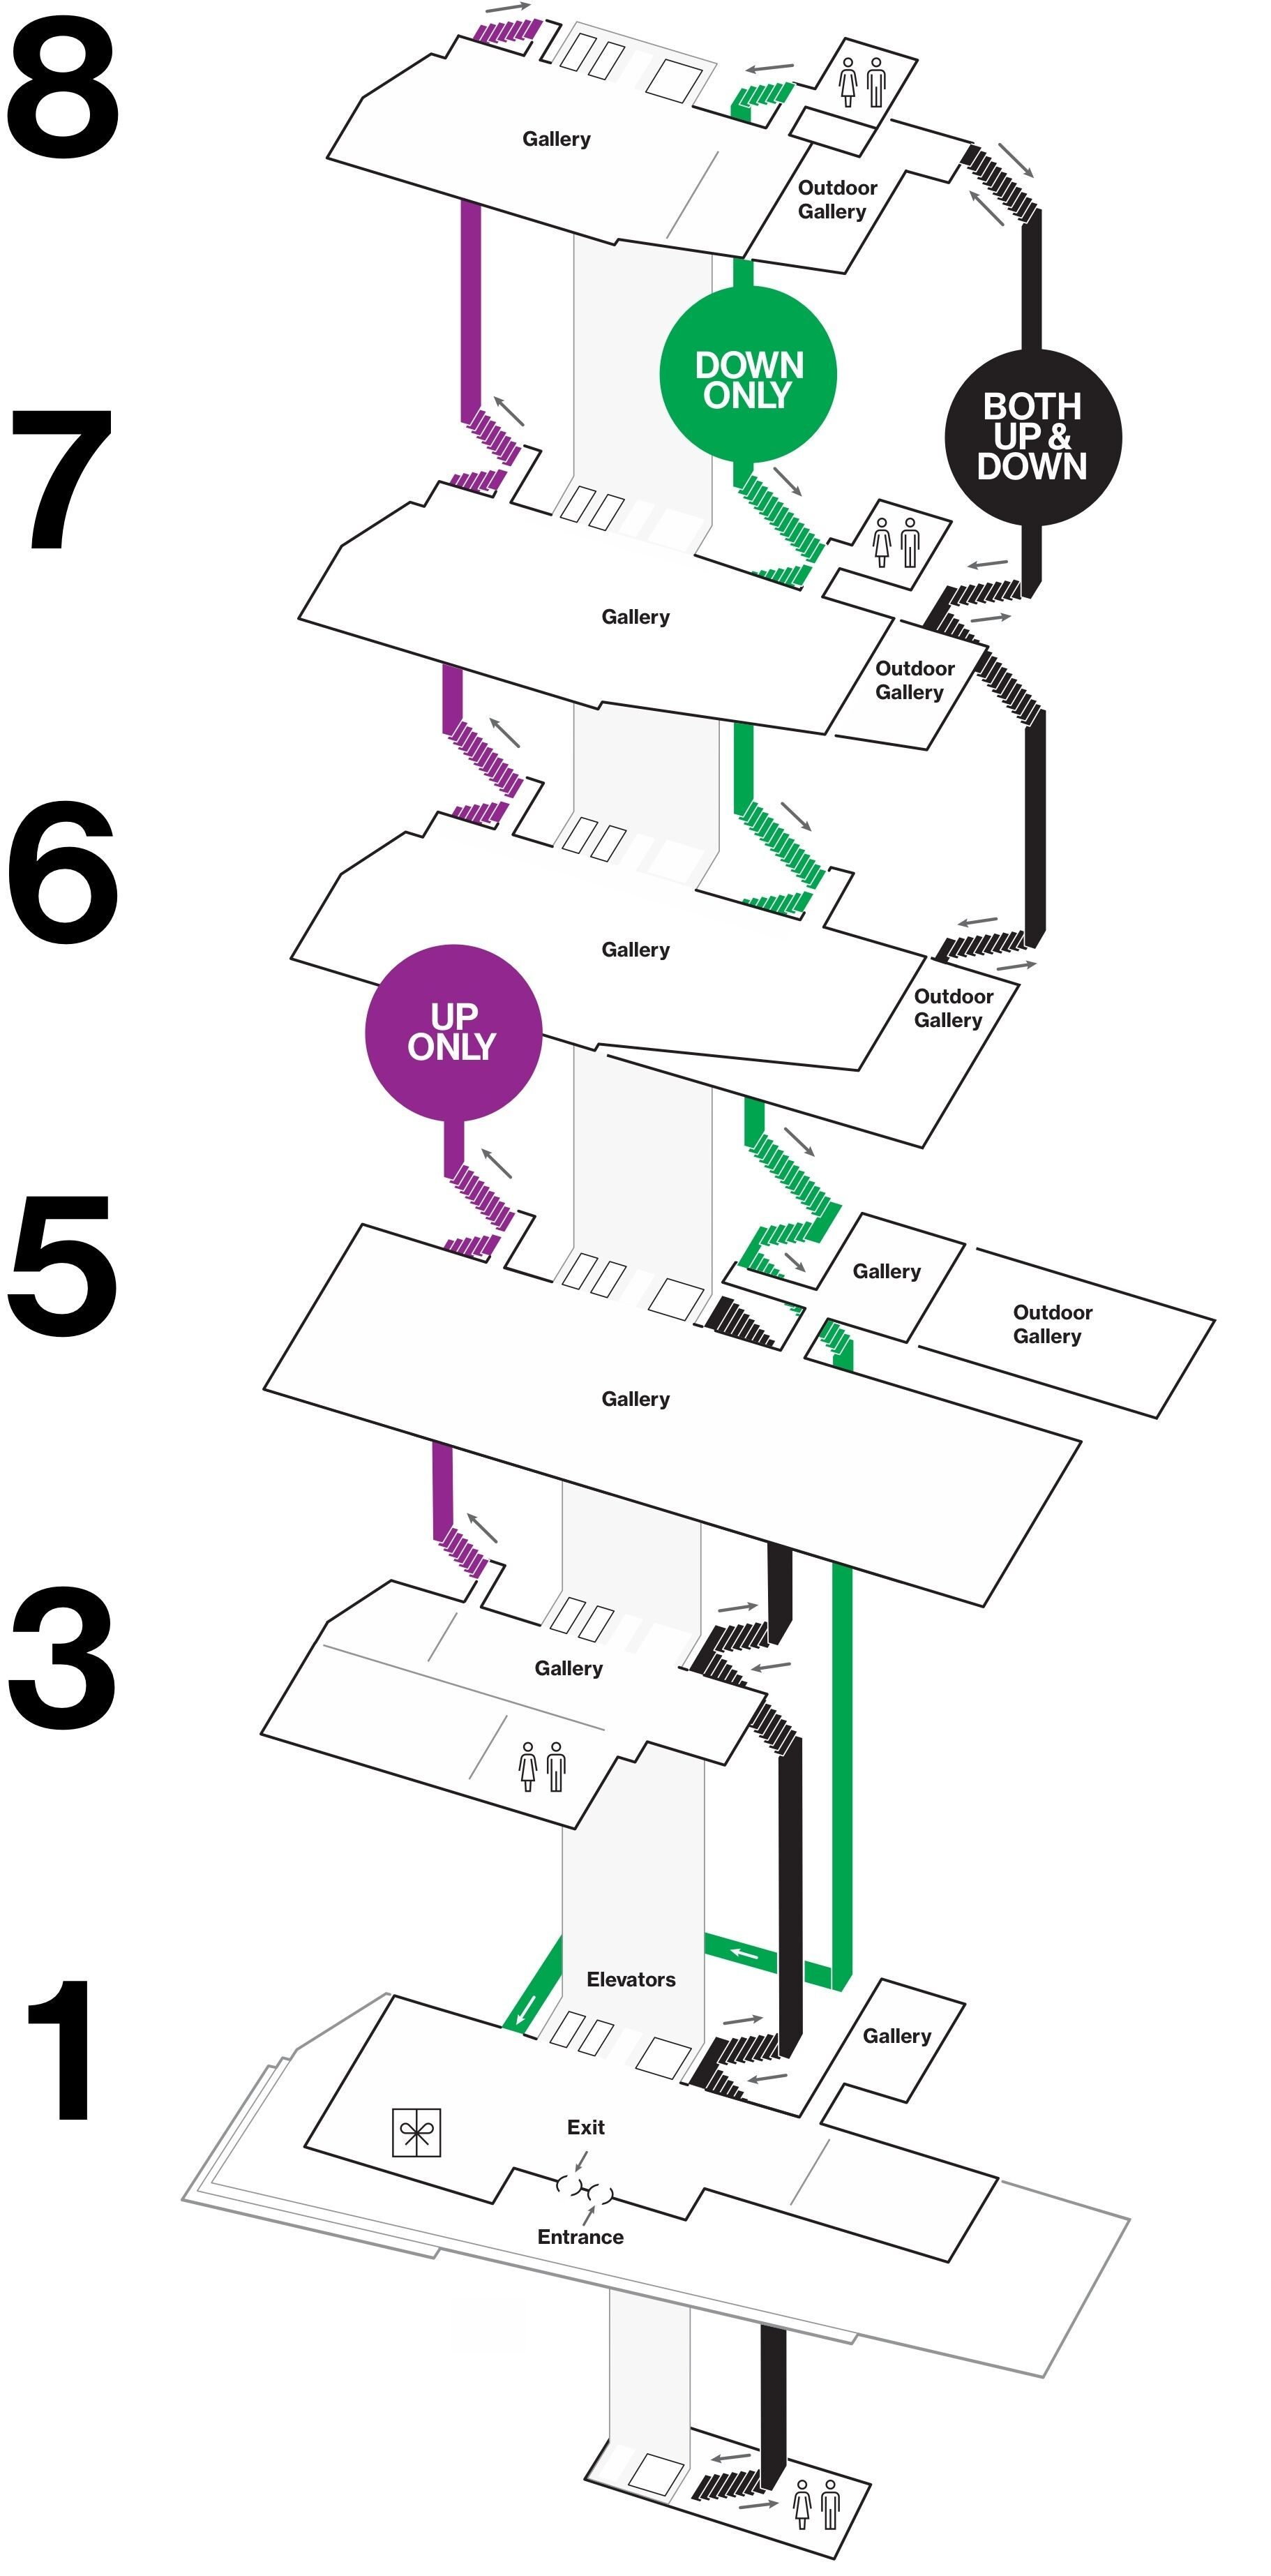 A map displaying all floors of the Whitney Museum with a purple line highlighting stairwells marked UP ONLY and a green line highlighting stairwells marked DOWN ONLY. Restrooms are located on Floors: -1, 3, 7, and 8. The lobby and shop are on Floor 1. Galleries are located on Floors: 3, 5, 6, 7, and 8.